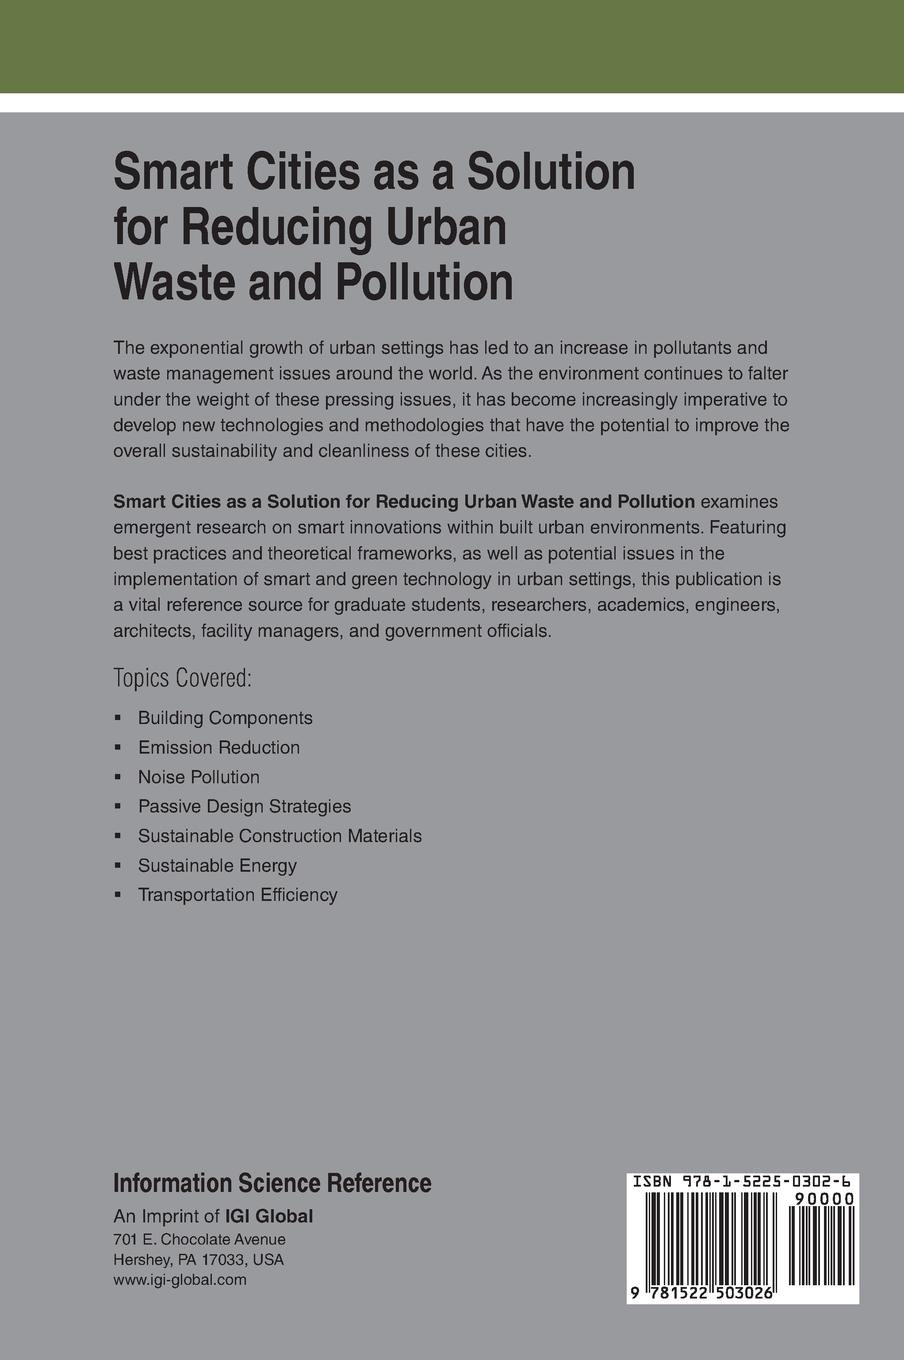 Smart Cities as a Solution for Reducing Urban Waste and